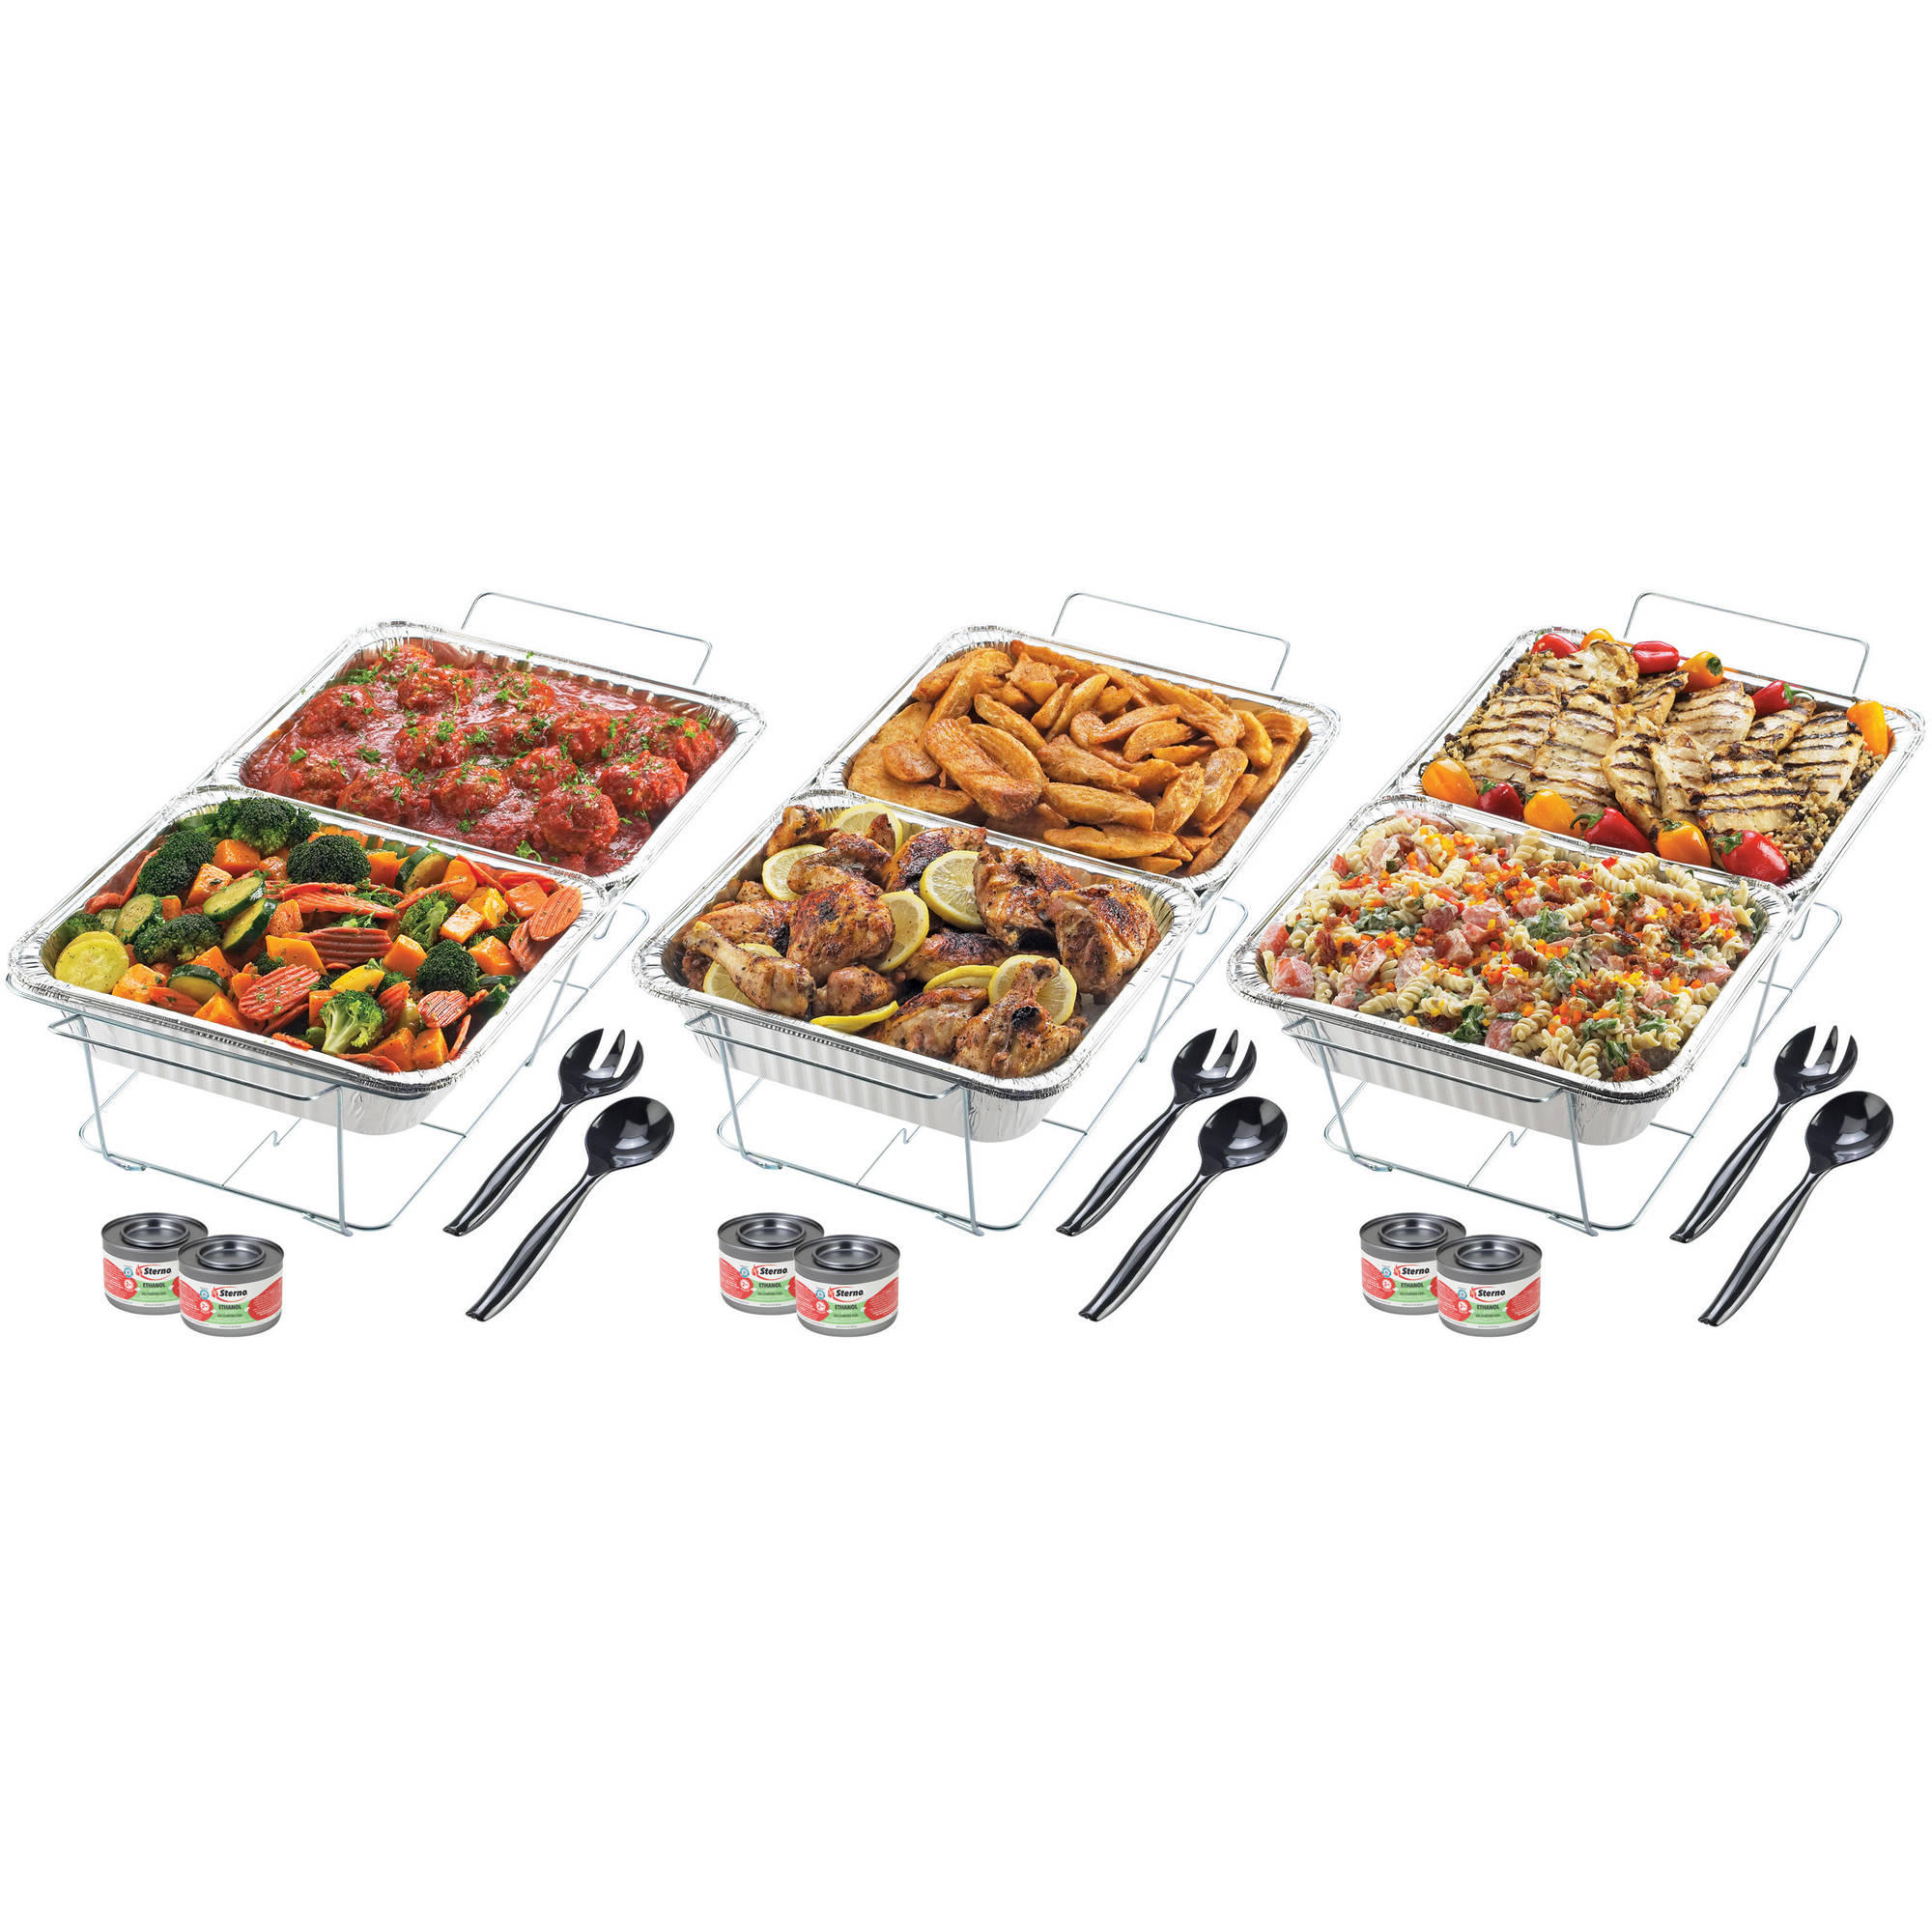 Sterno 70222 24-Piece Disposable Party Set